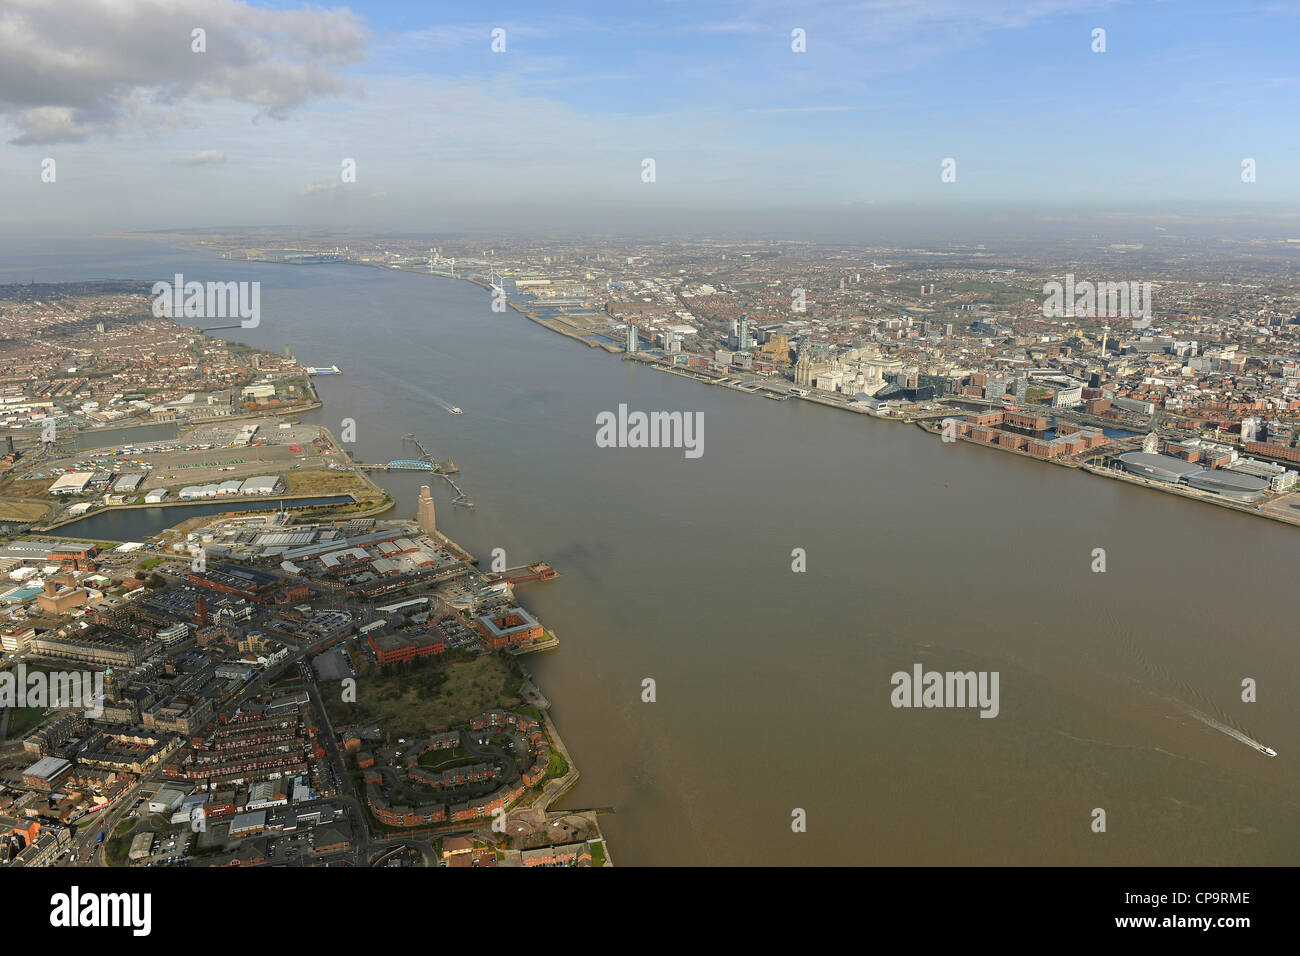 Wide angle aerial view of the River Mersey - Stock Image